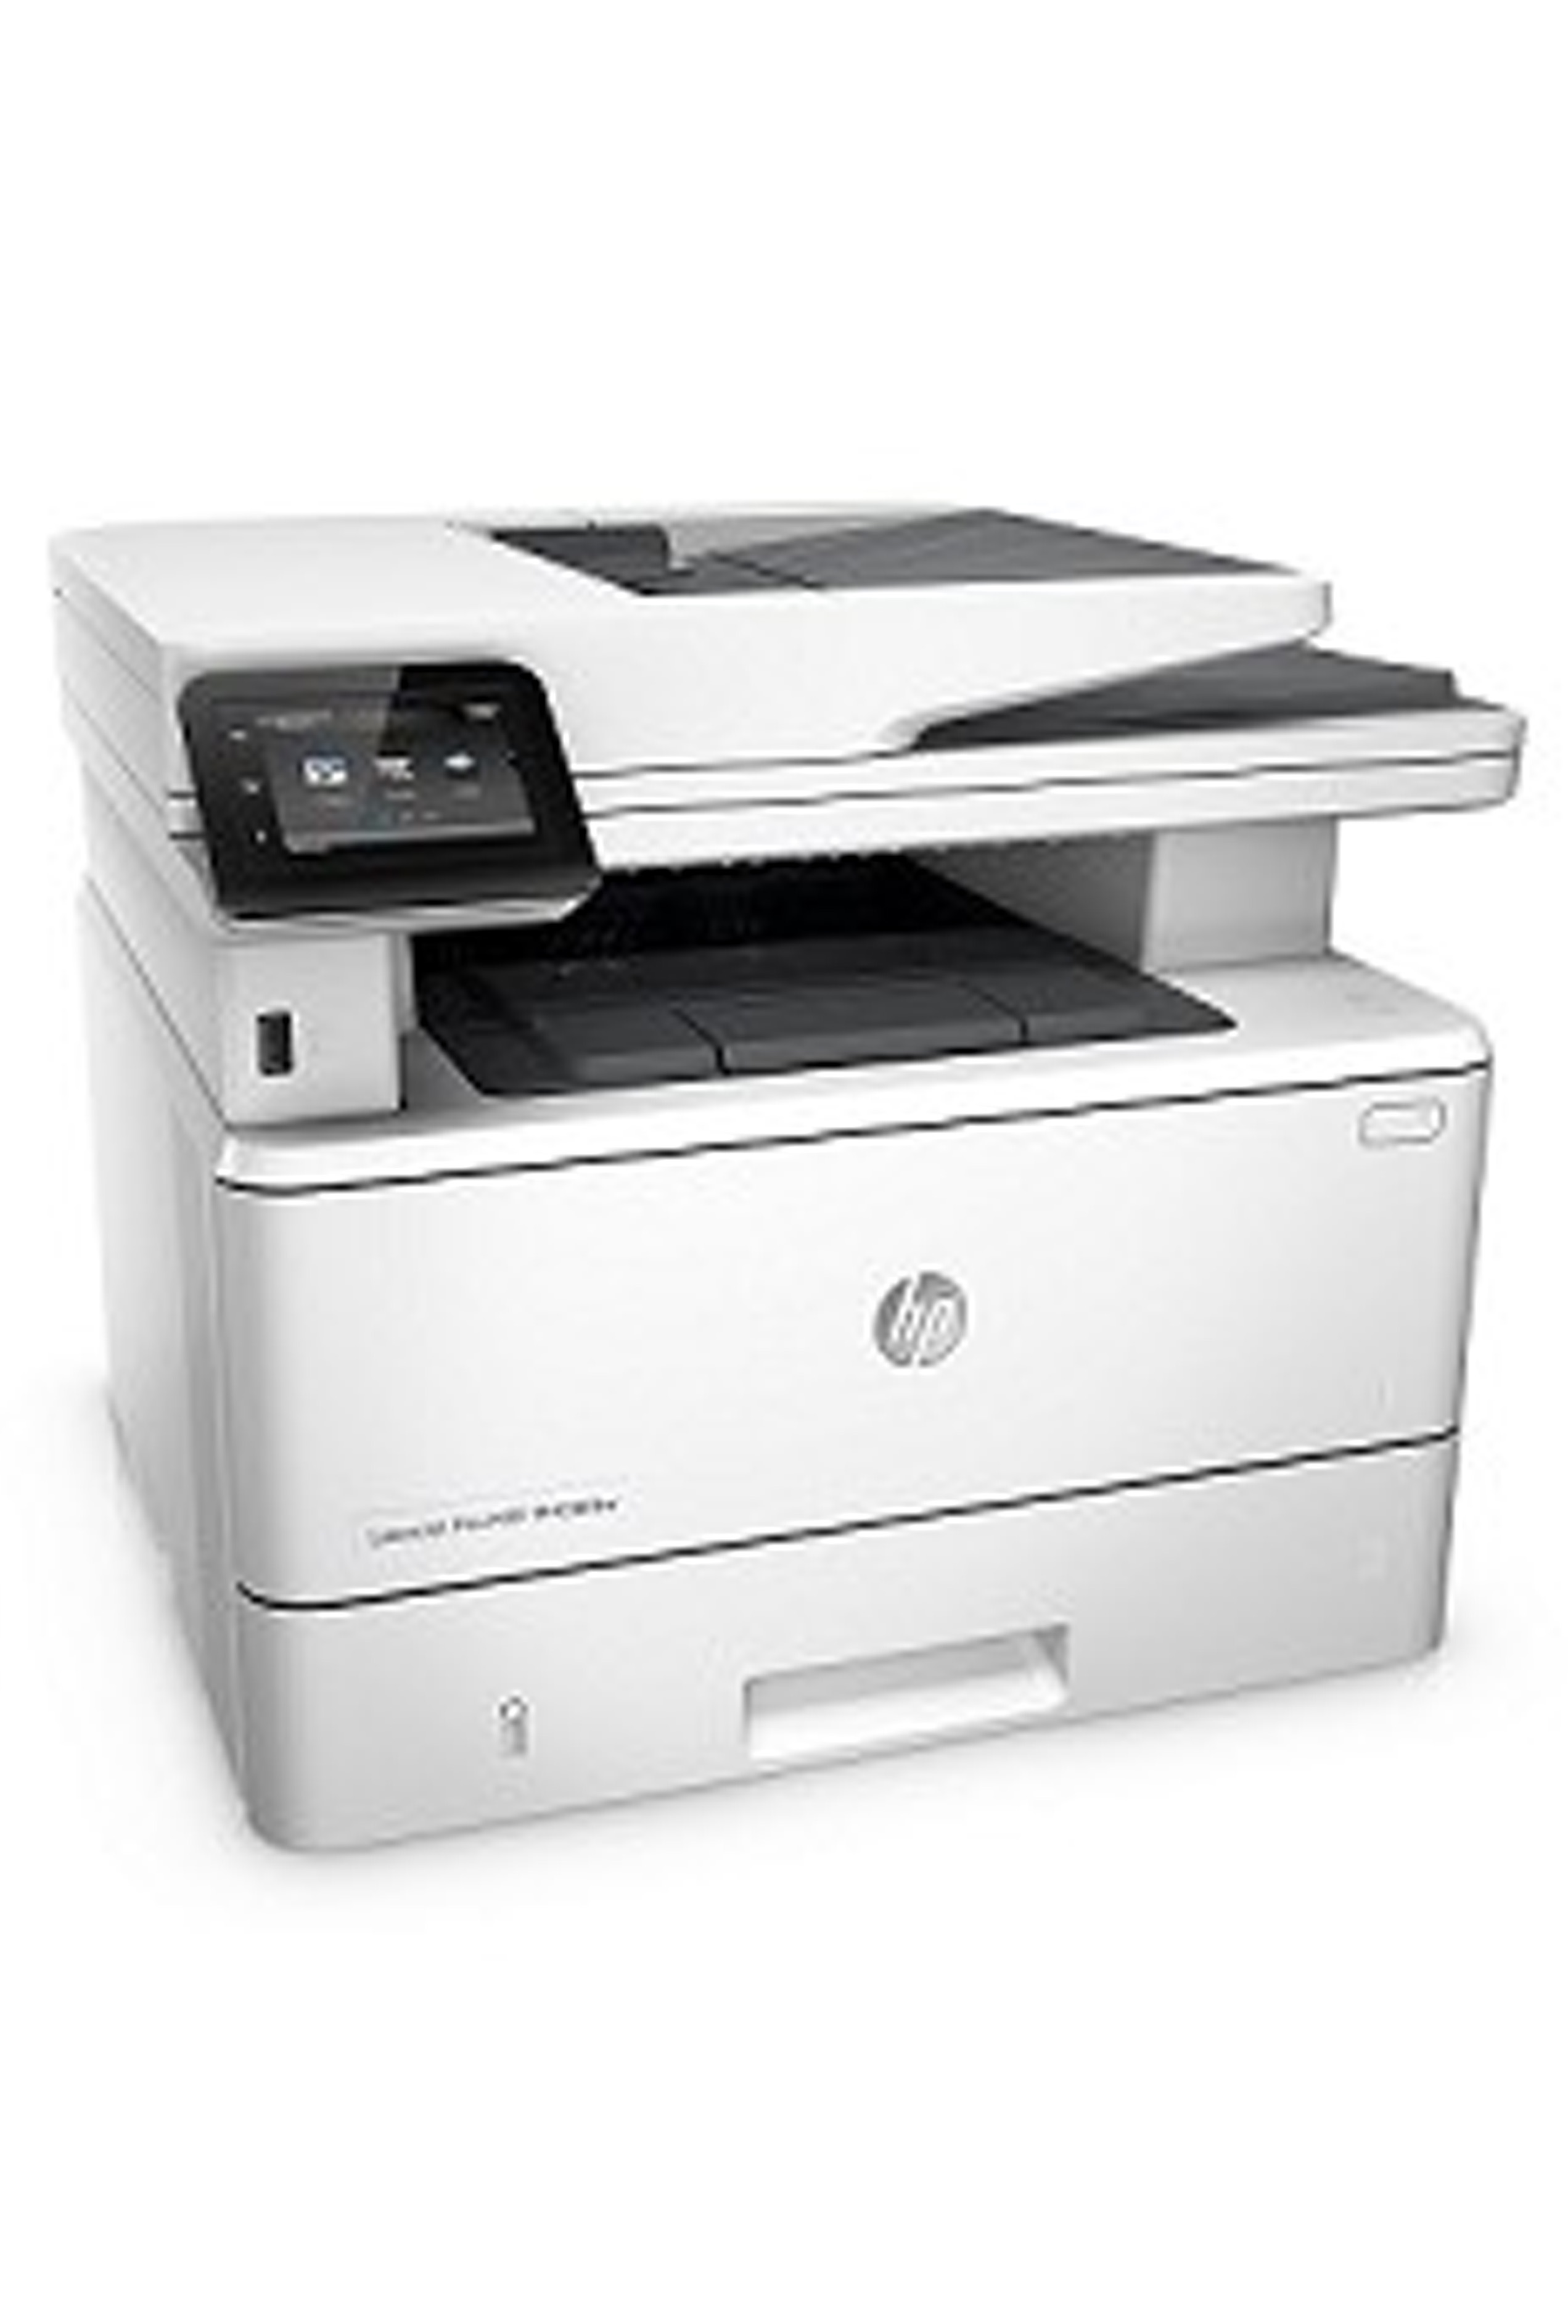 HP Black & White LaserJet Pro MFP M426FDW 40ppm Multifunction...